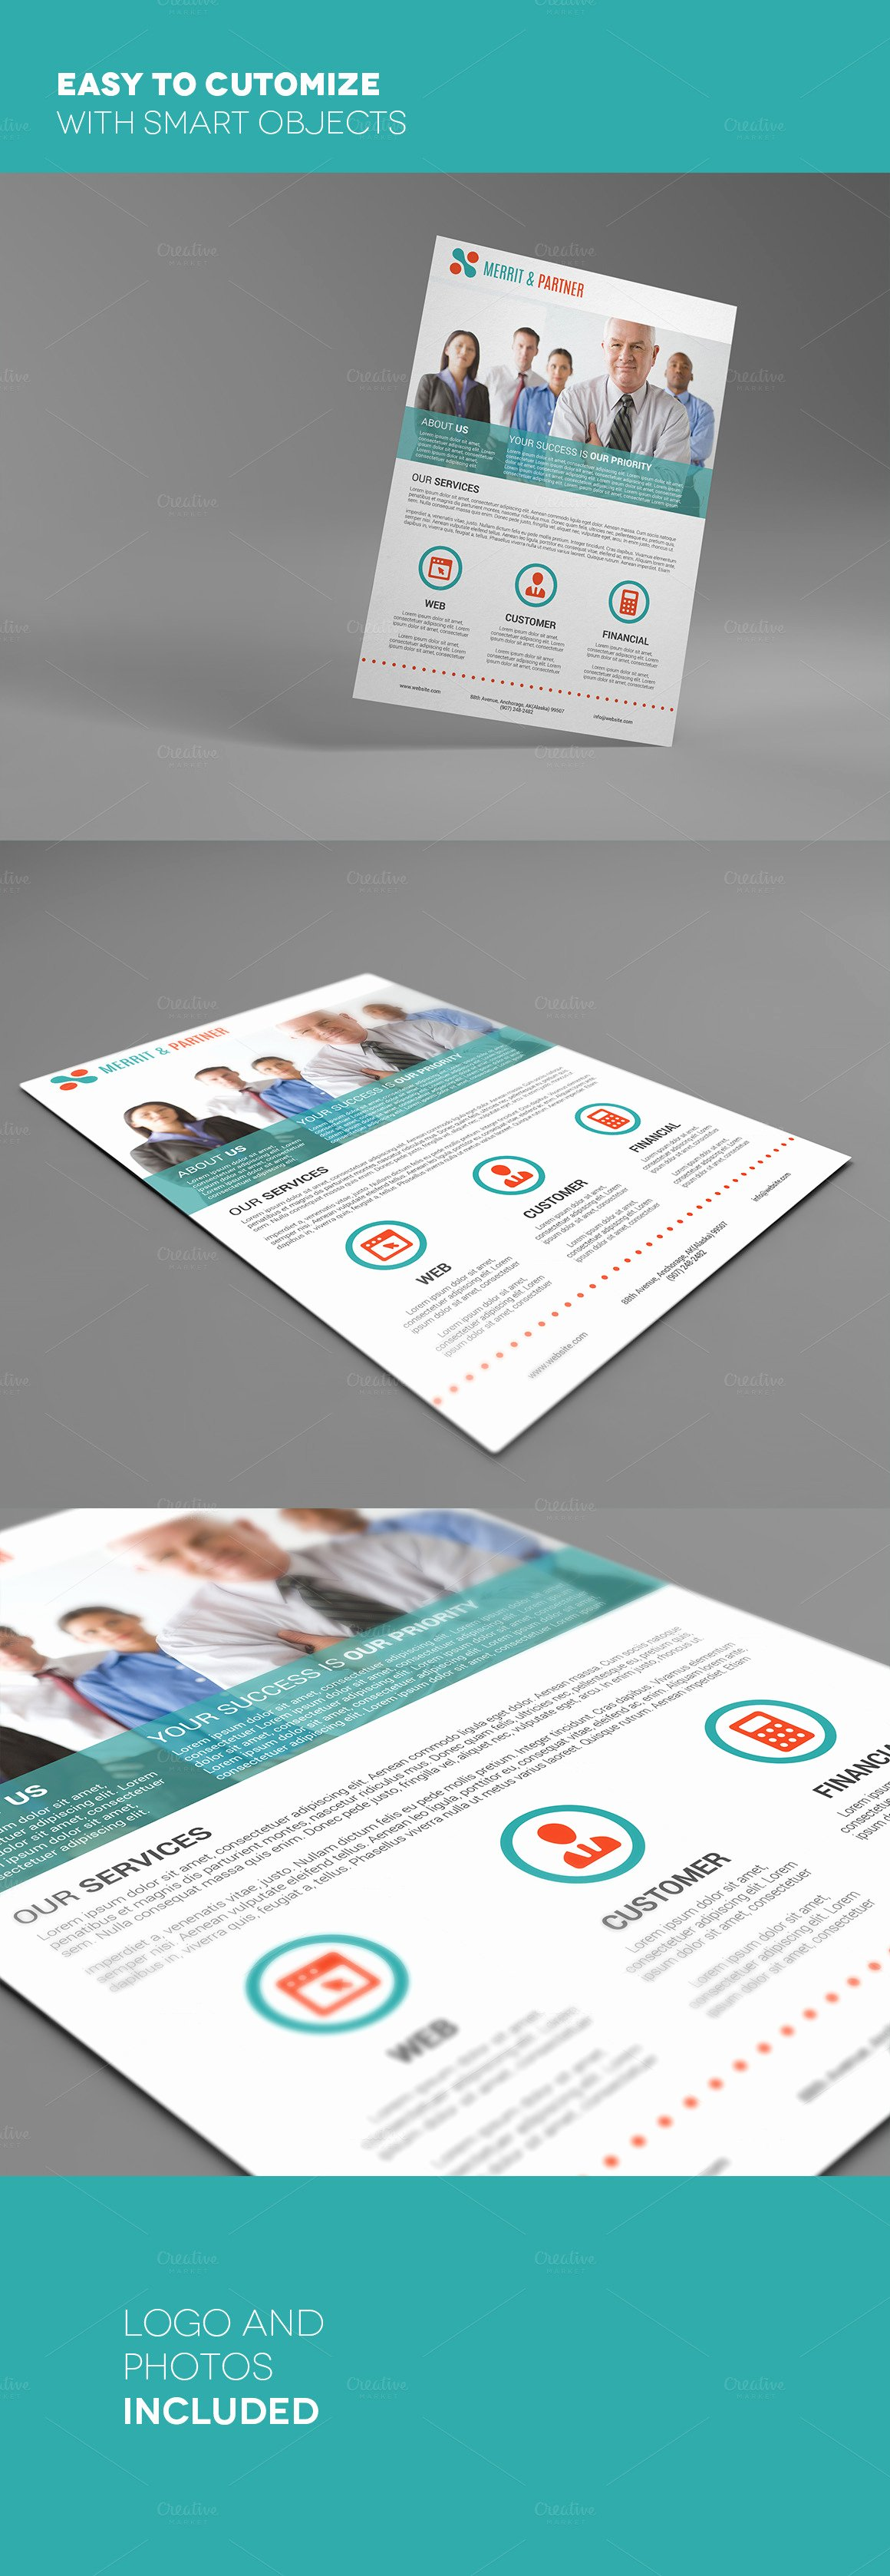 Double Sided Flyer Template Luxury A4 Double Sided Corporate Flyer Flyer Templates On